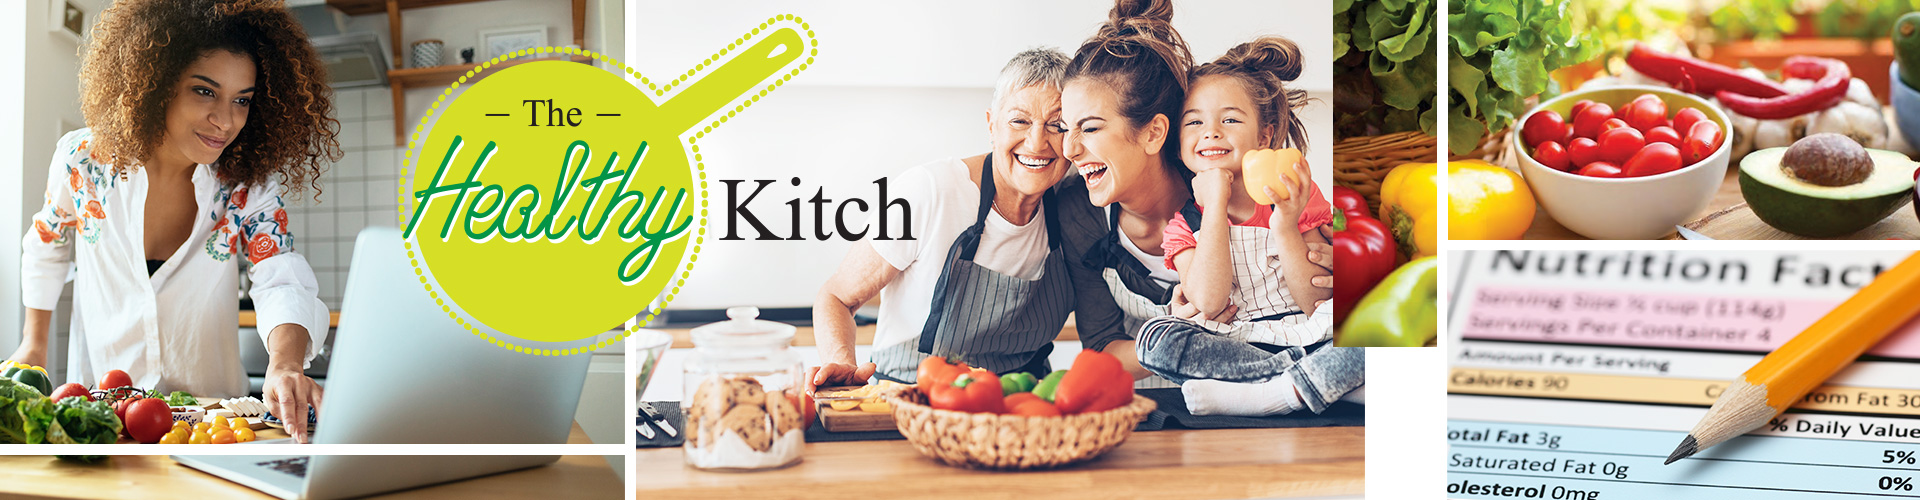 Healthy-Kitch-1920x500